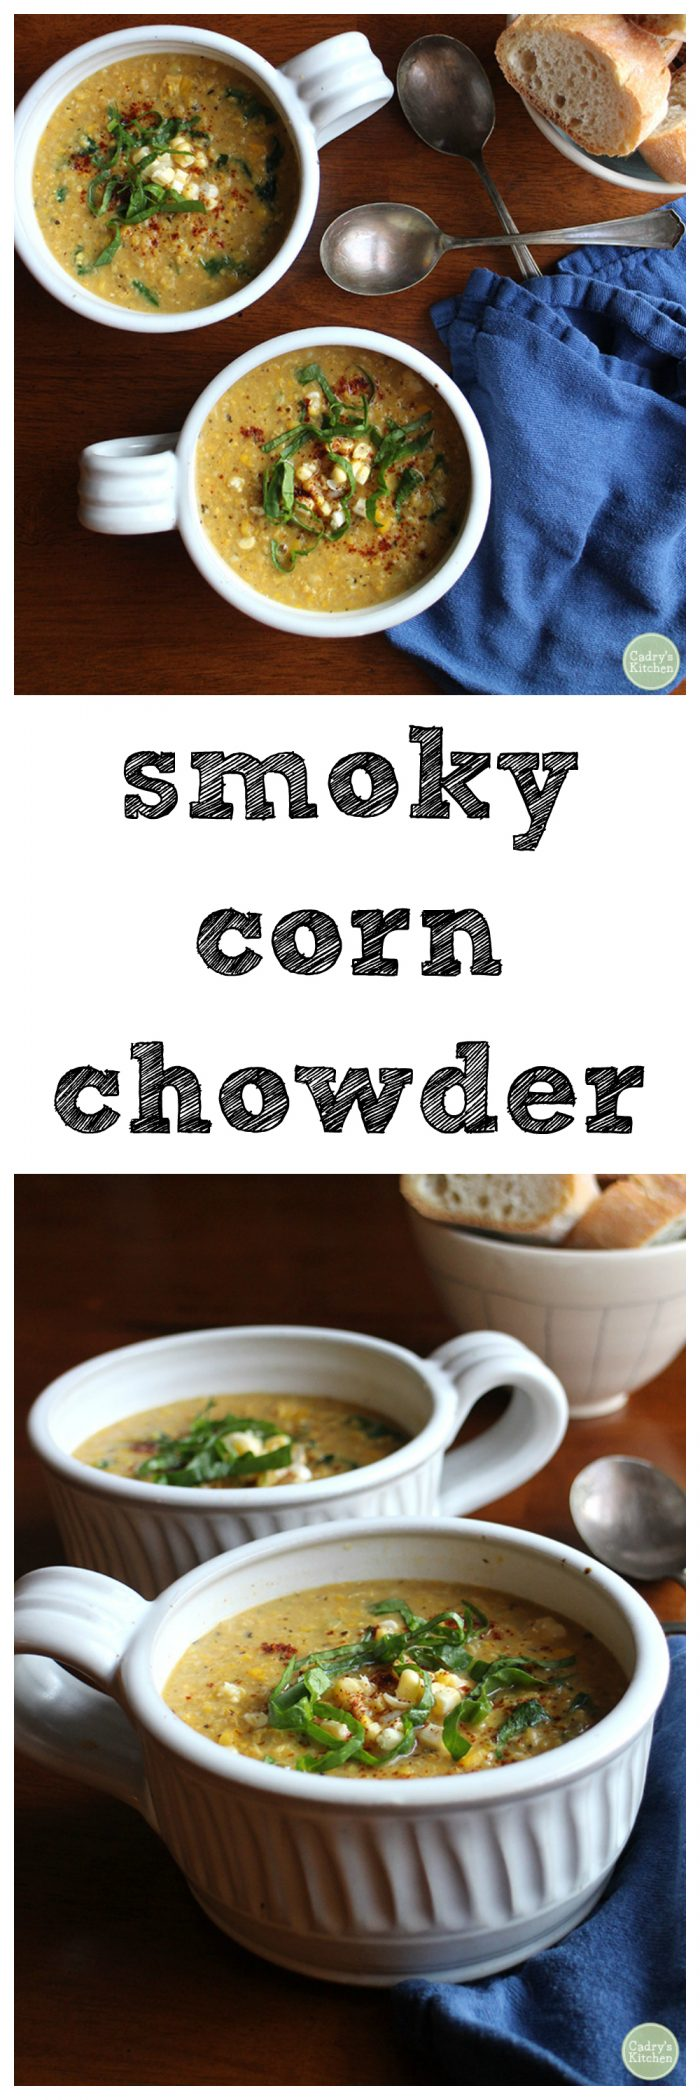 Smoky corn chowder - a savory creamy soup that's entirely vegan | cadryskitchen.com